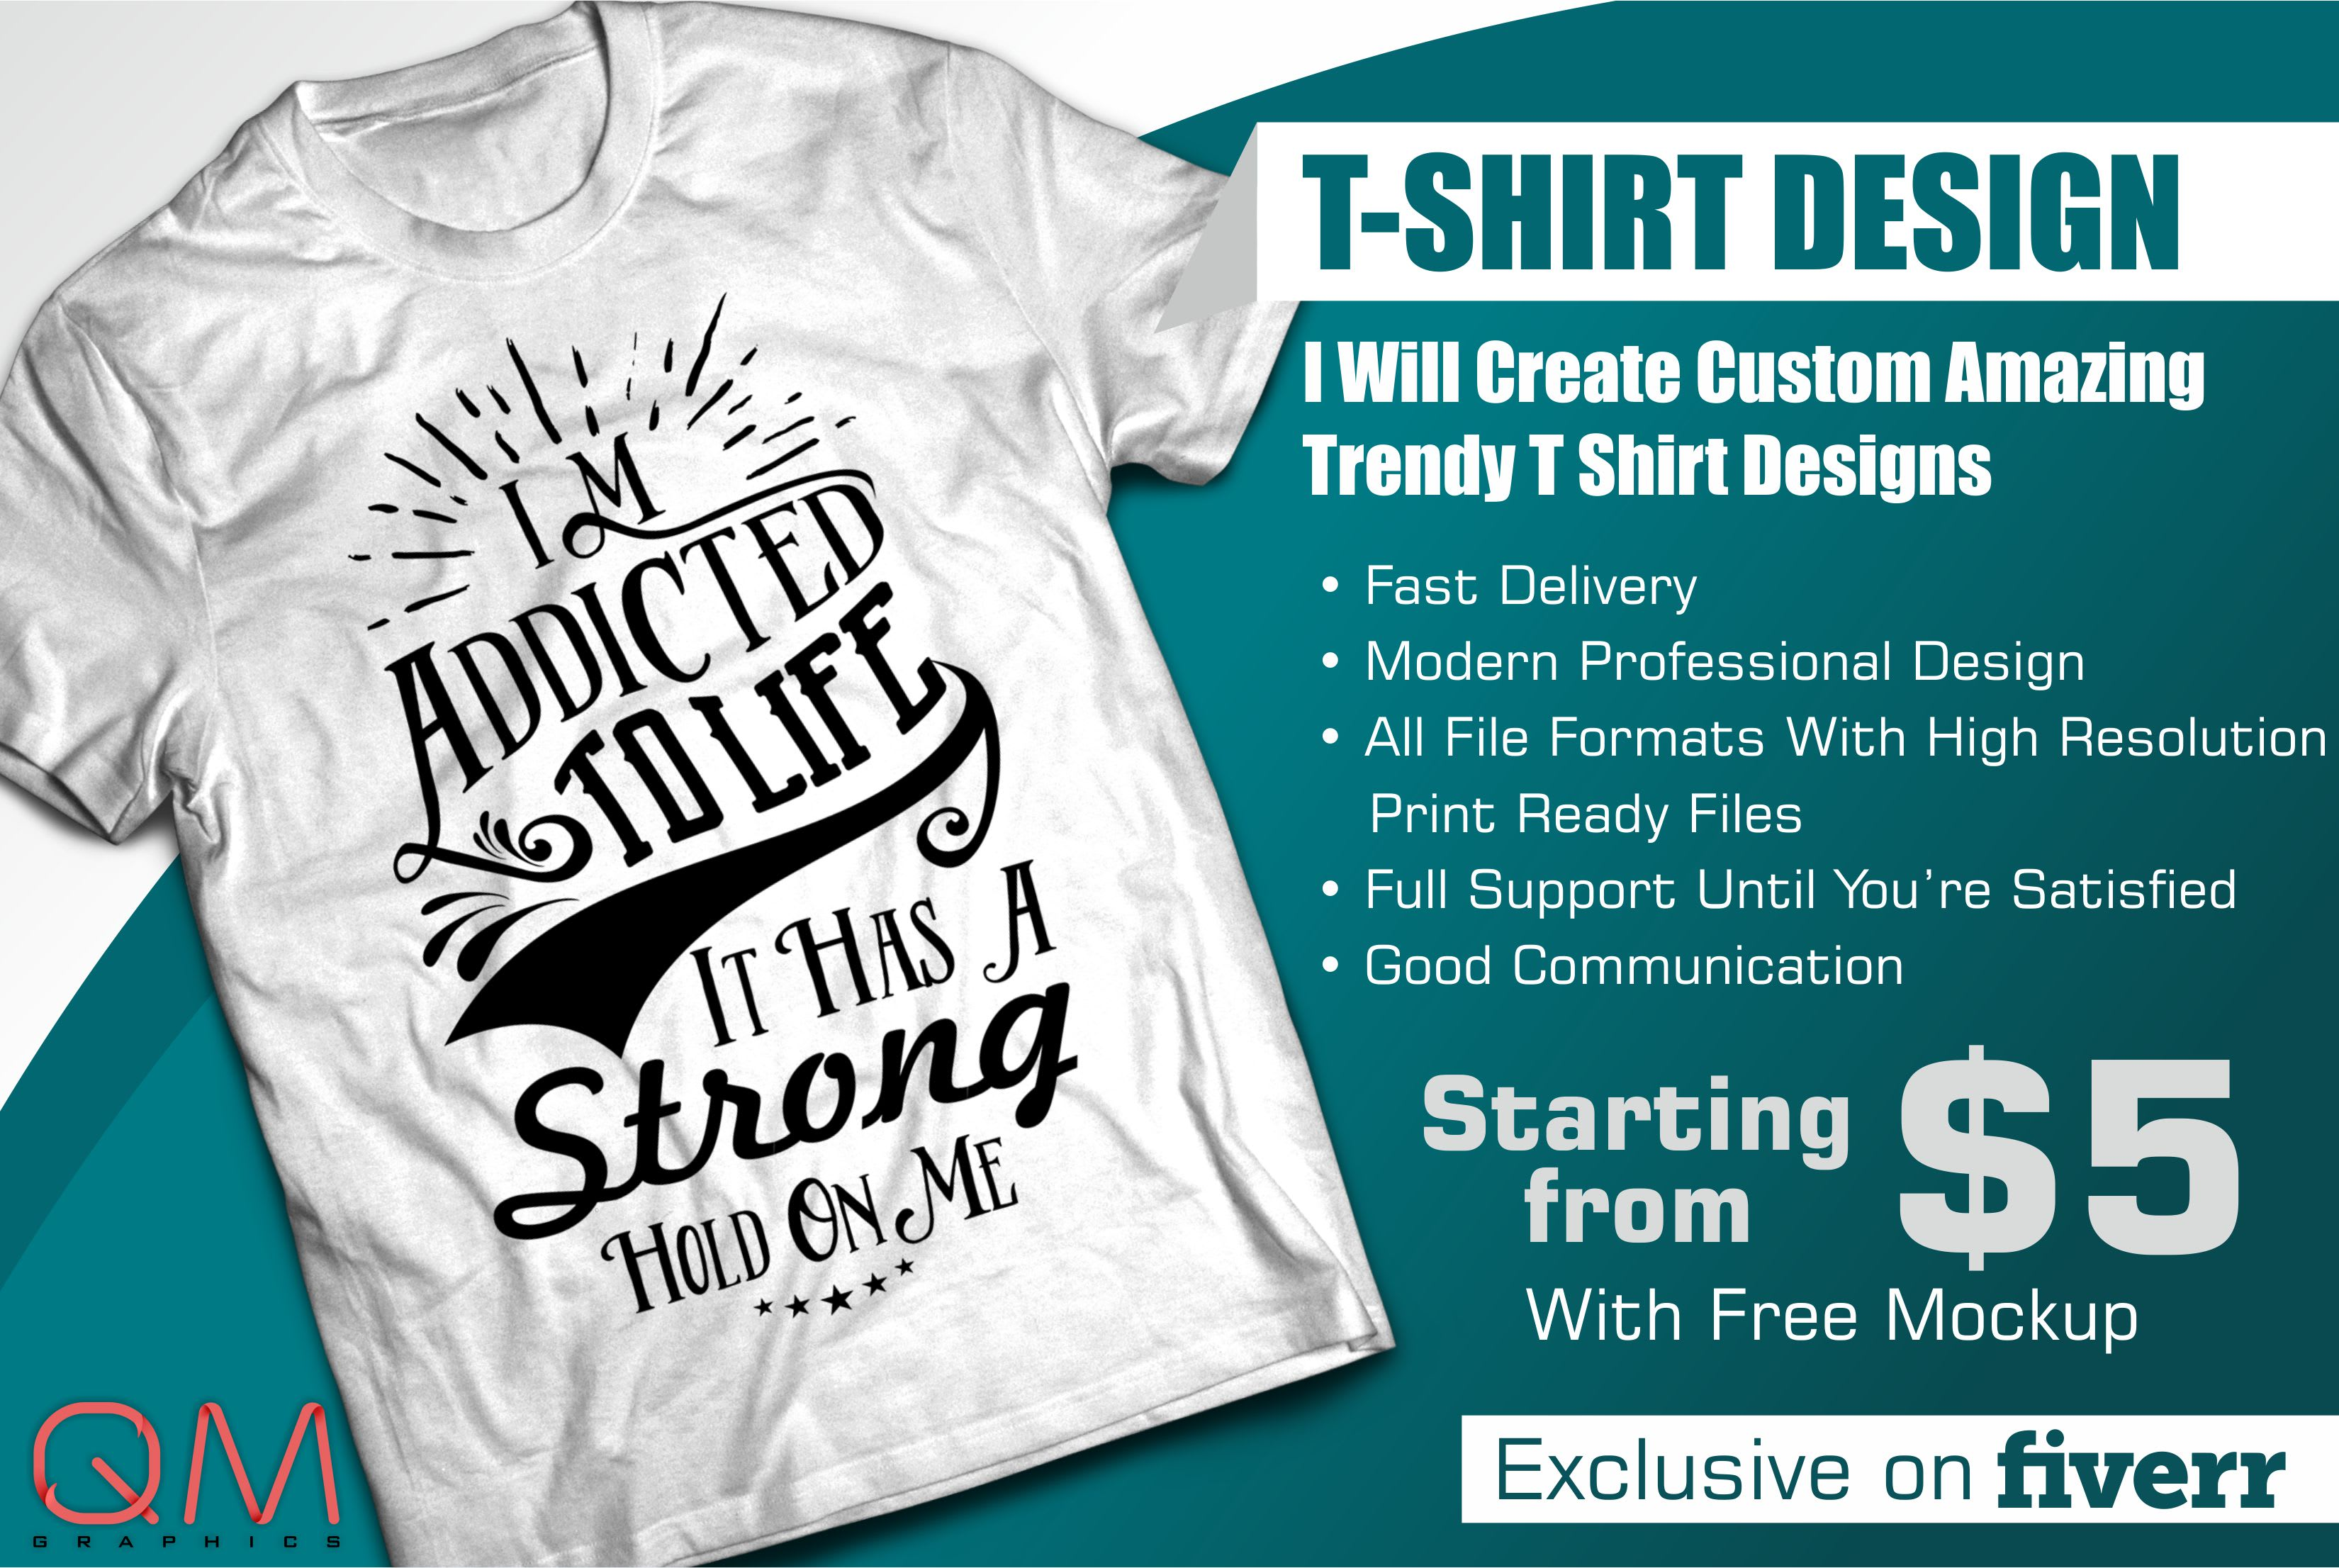 c95a49d4f How To Create Custom T Shirt Designs – EDGE Engineering and ...